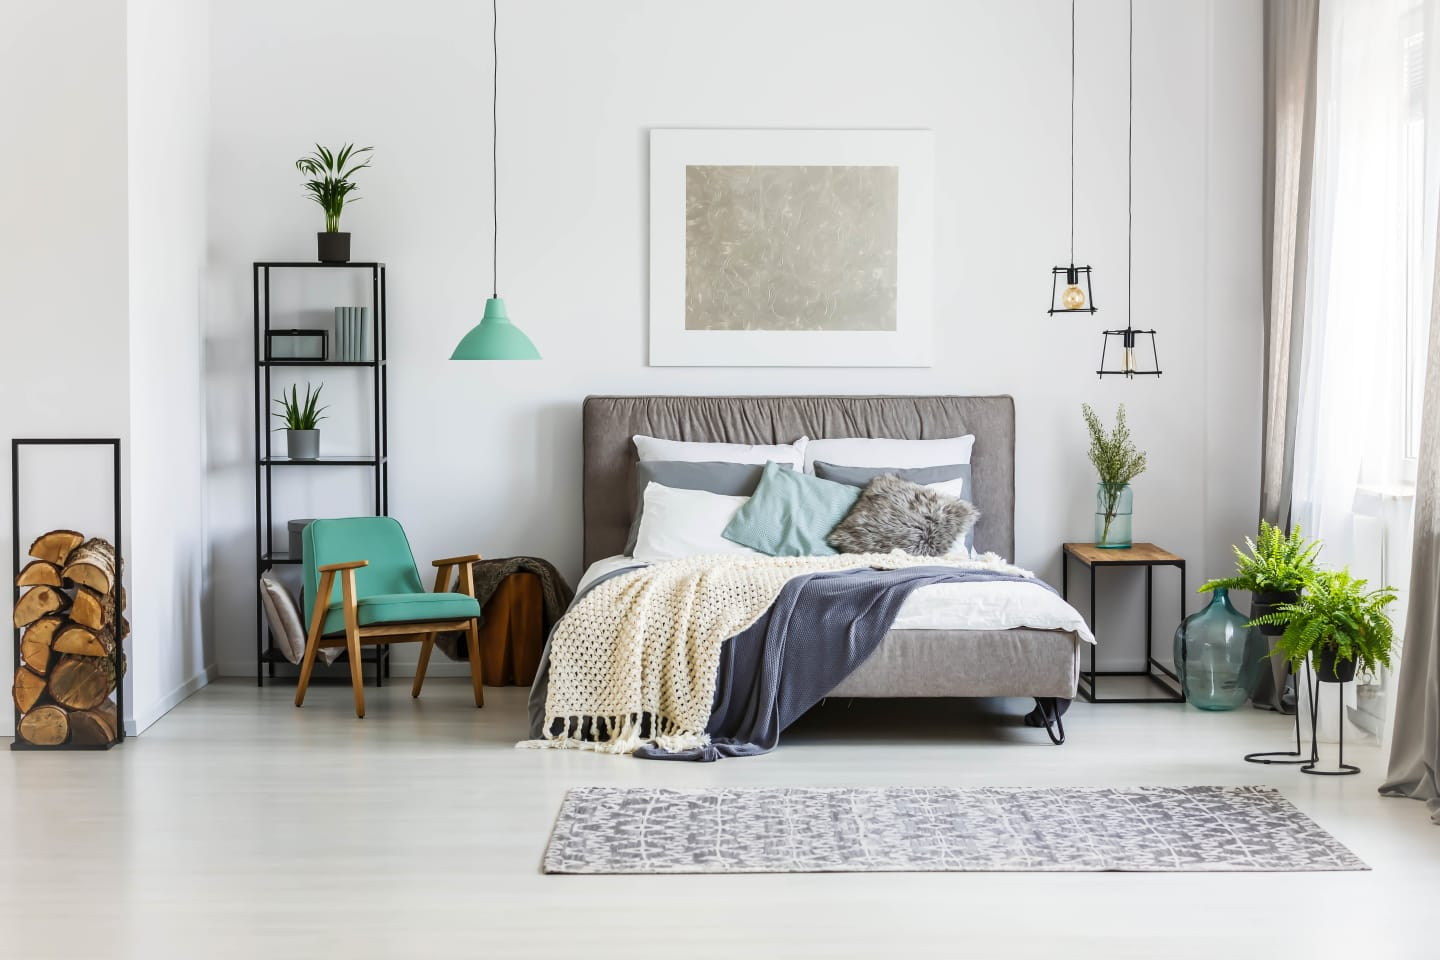 Neutral schemed bedroom with hints of mint